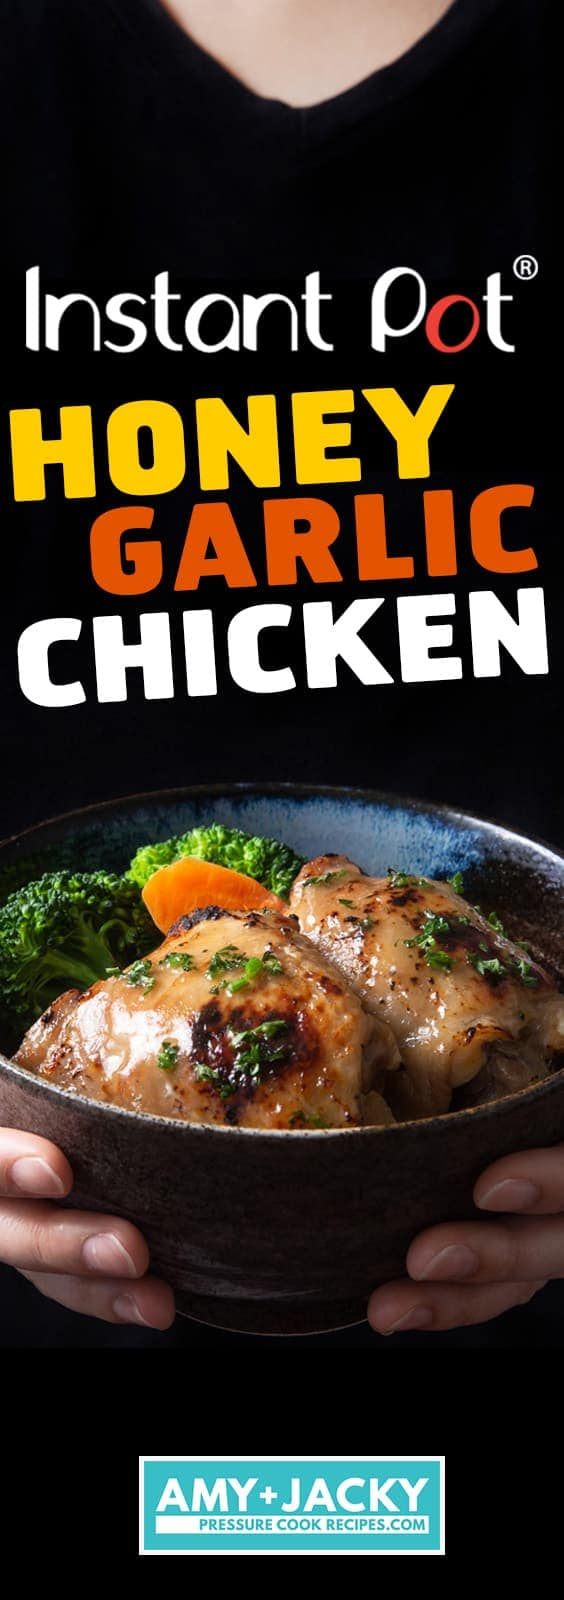 Instant Pot Honey Garlic Chicken Recipe (Pressure Cooker Honey Garlic Chicken): A few simple pantry staples to make tender, juicy chicken glazed with deliciously sweet Honey Garlic Sauce. Great family recipe for busy nights!#instantpot #pressurecooker #chicken #chickenrecipes #recipes